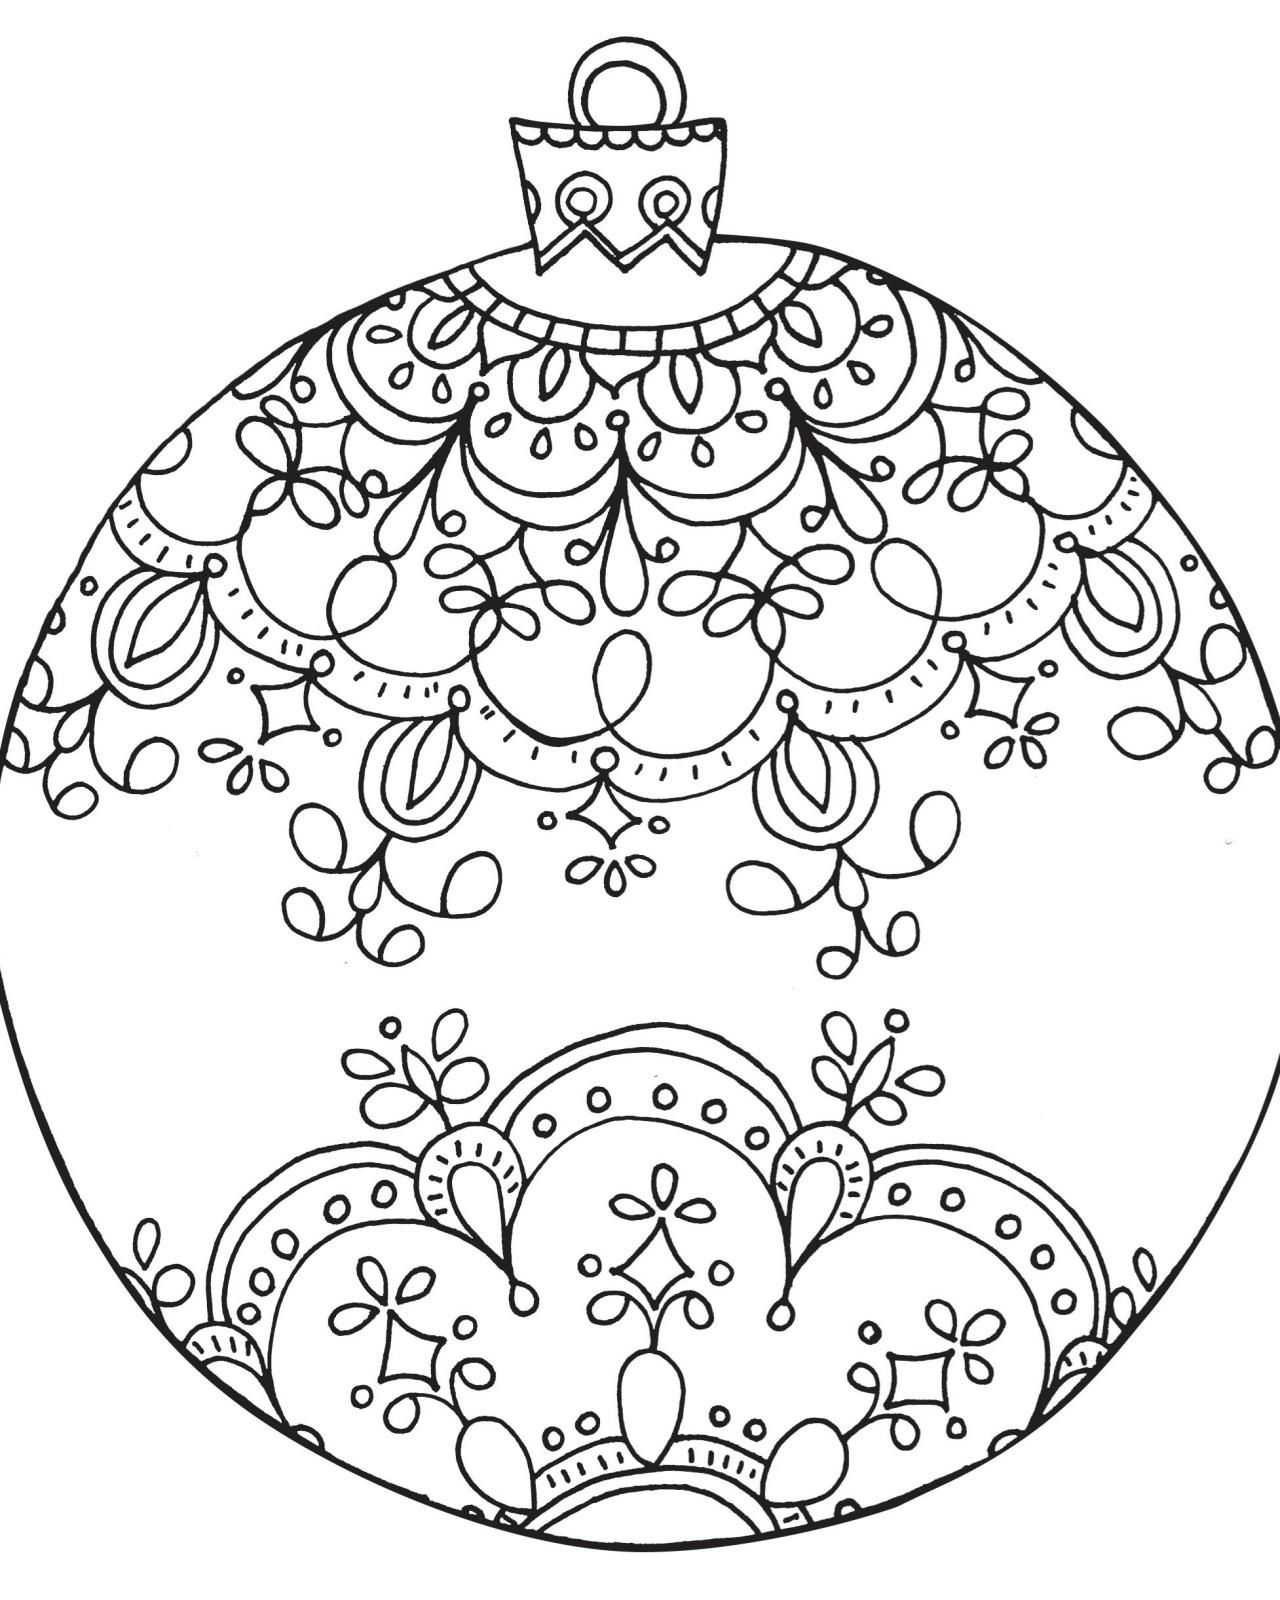 Christmas Ornaments Coloring Pages With Elegant Unique Ornament